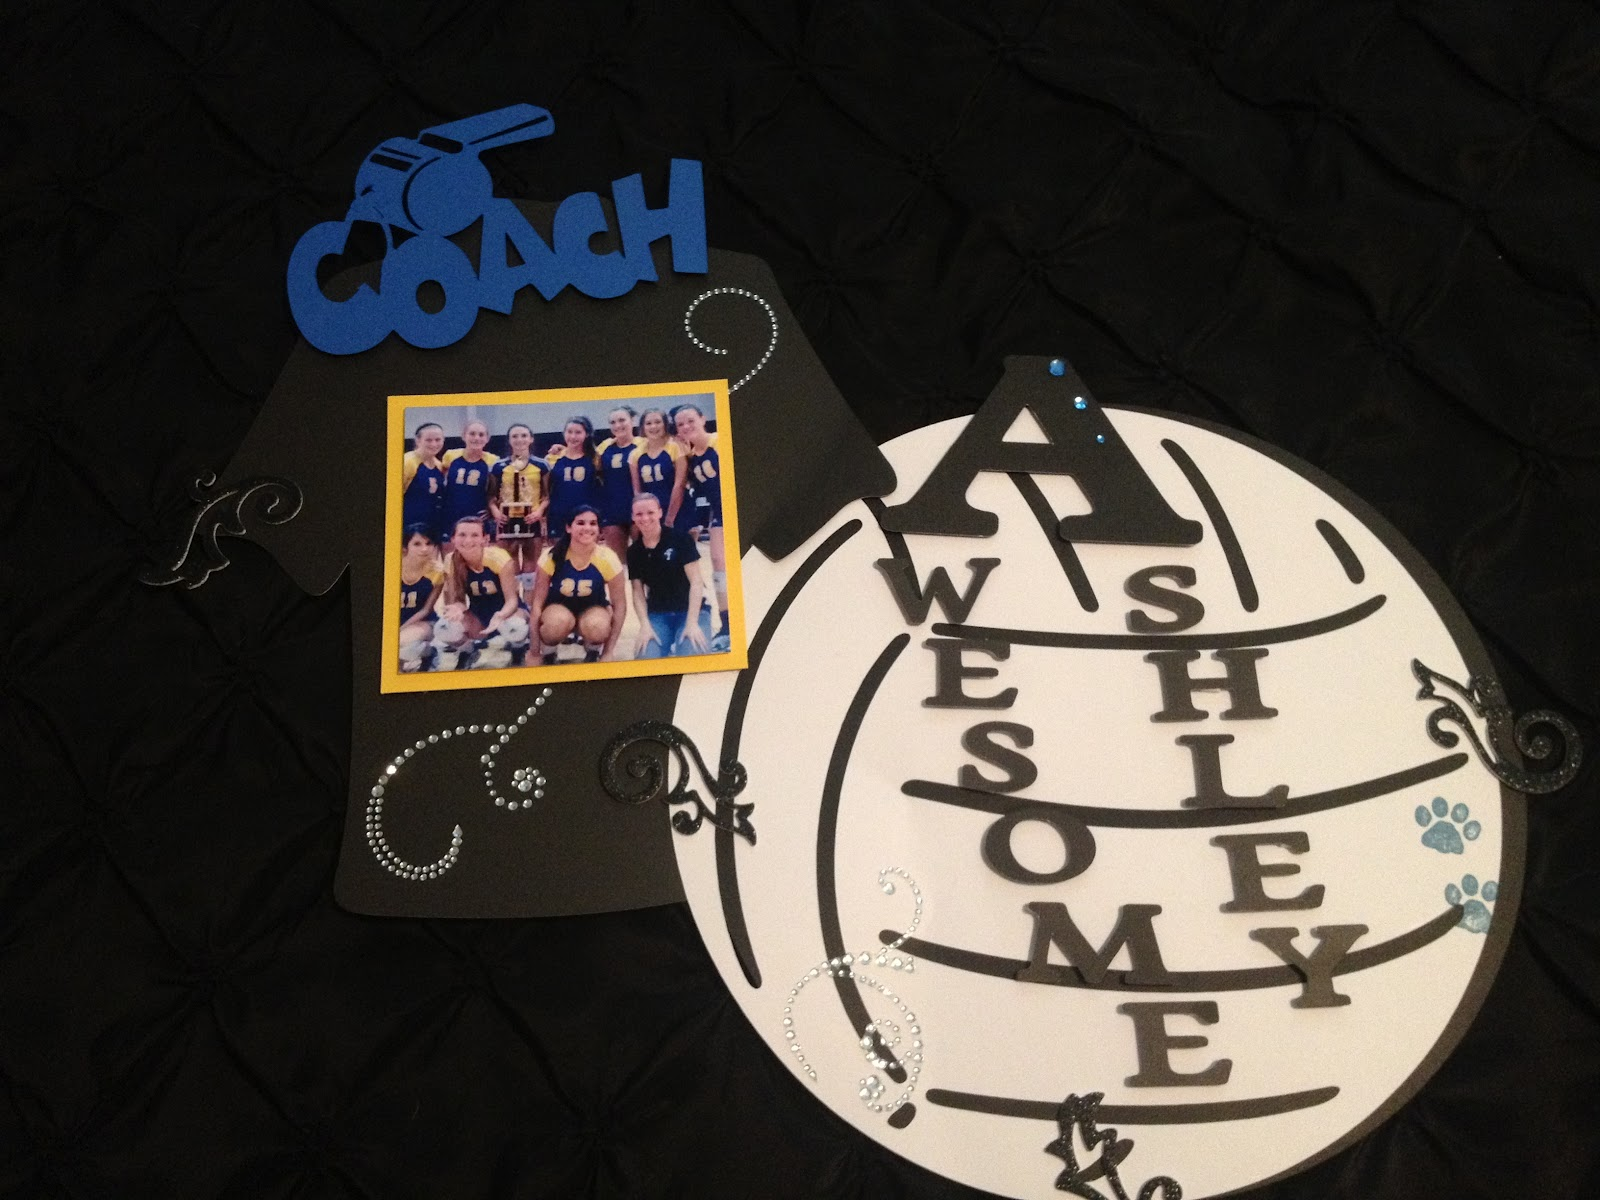 This is the gym wall decoration for the main coach of the team